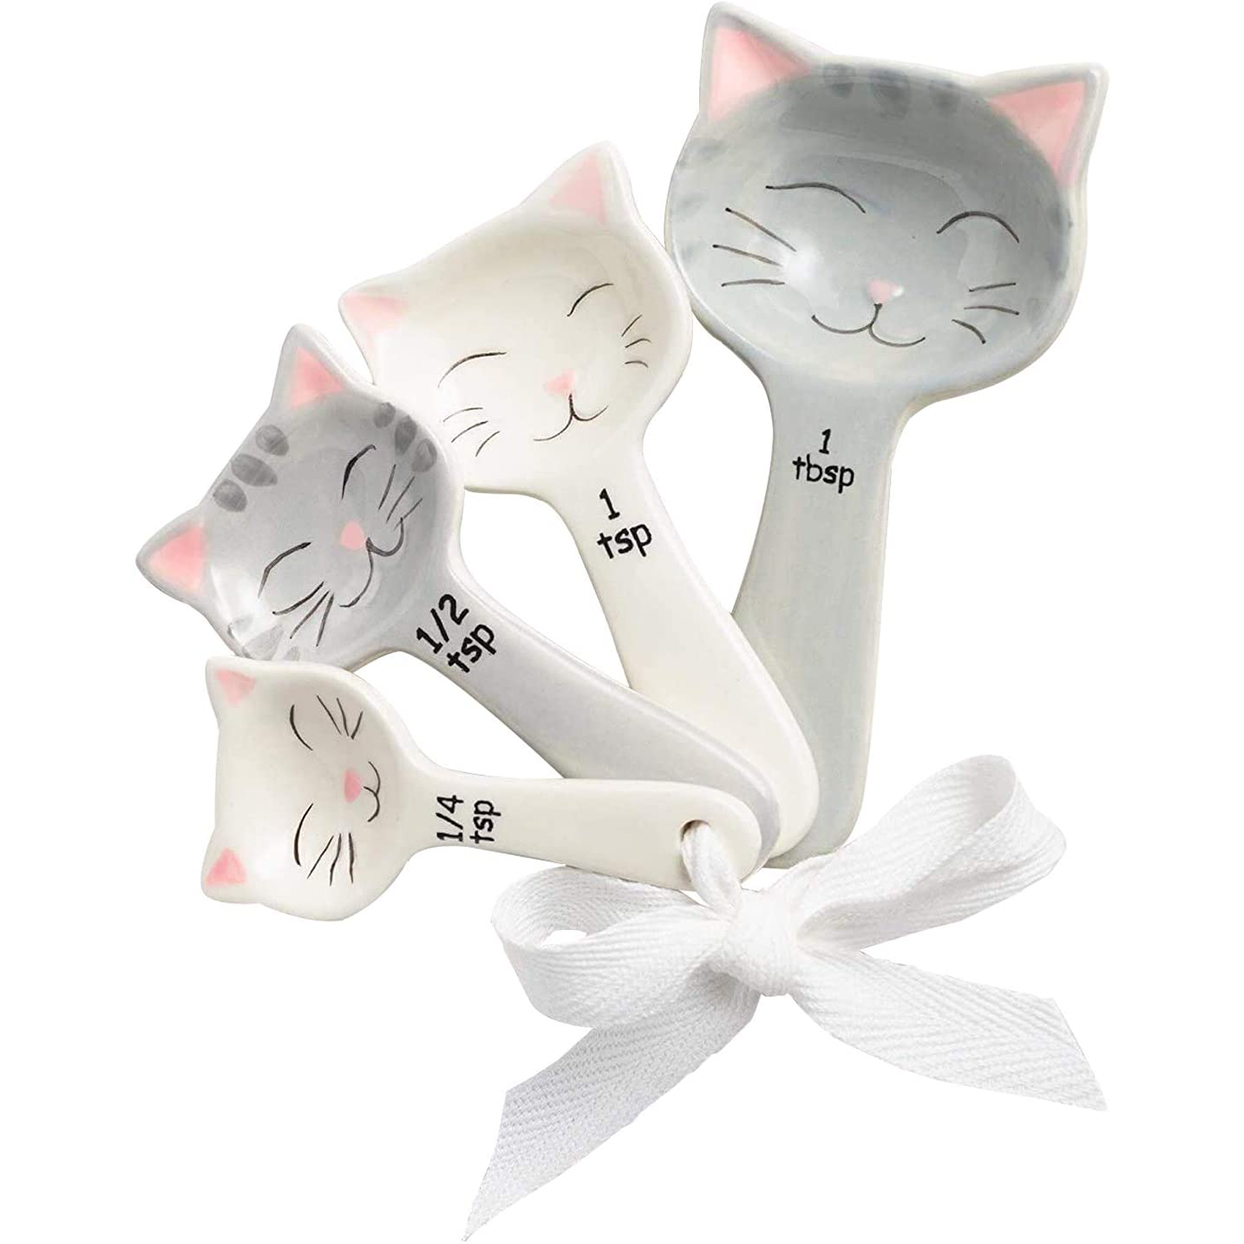 Cat shaped ceramic measuring spoons